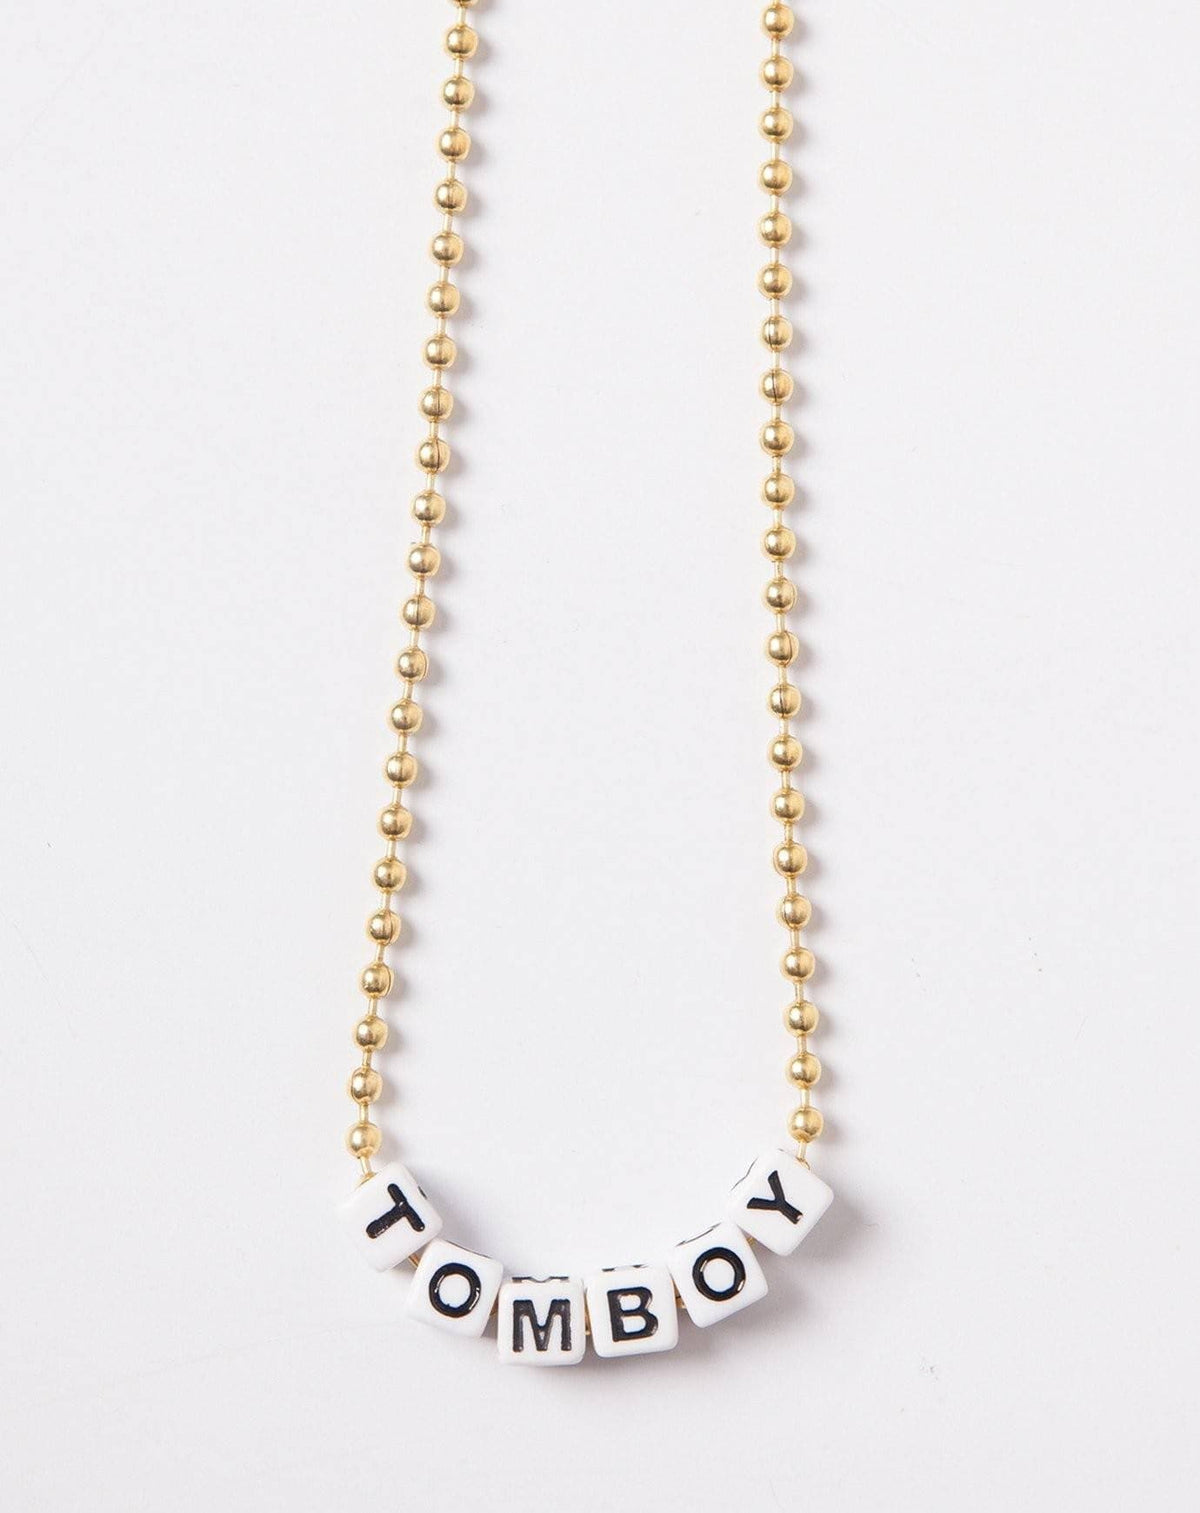 Tomboy Necklace